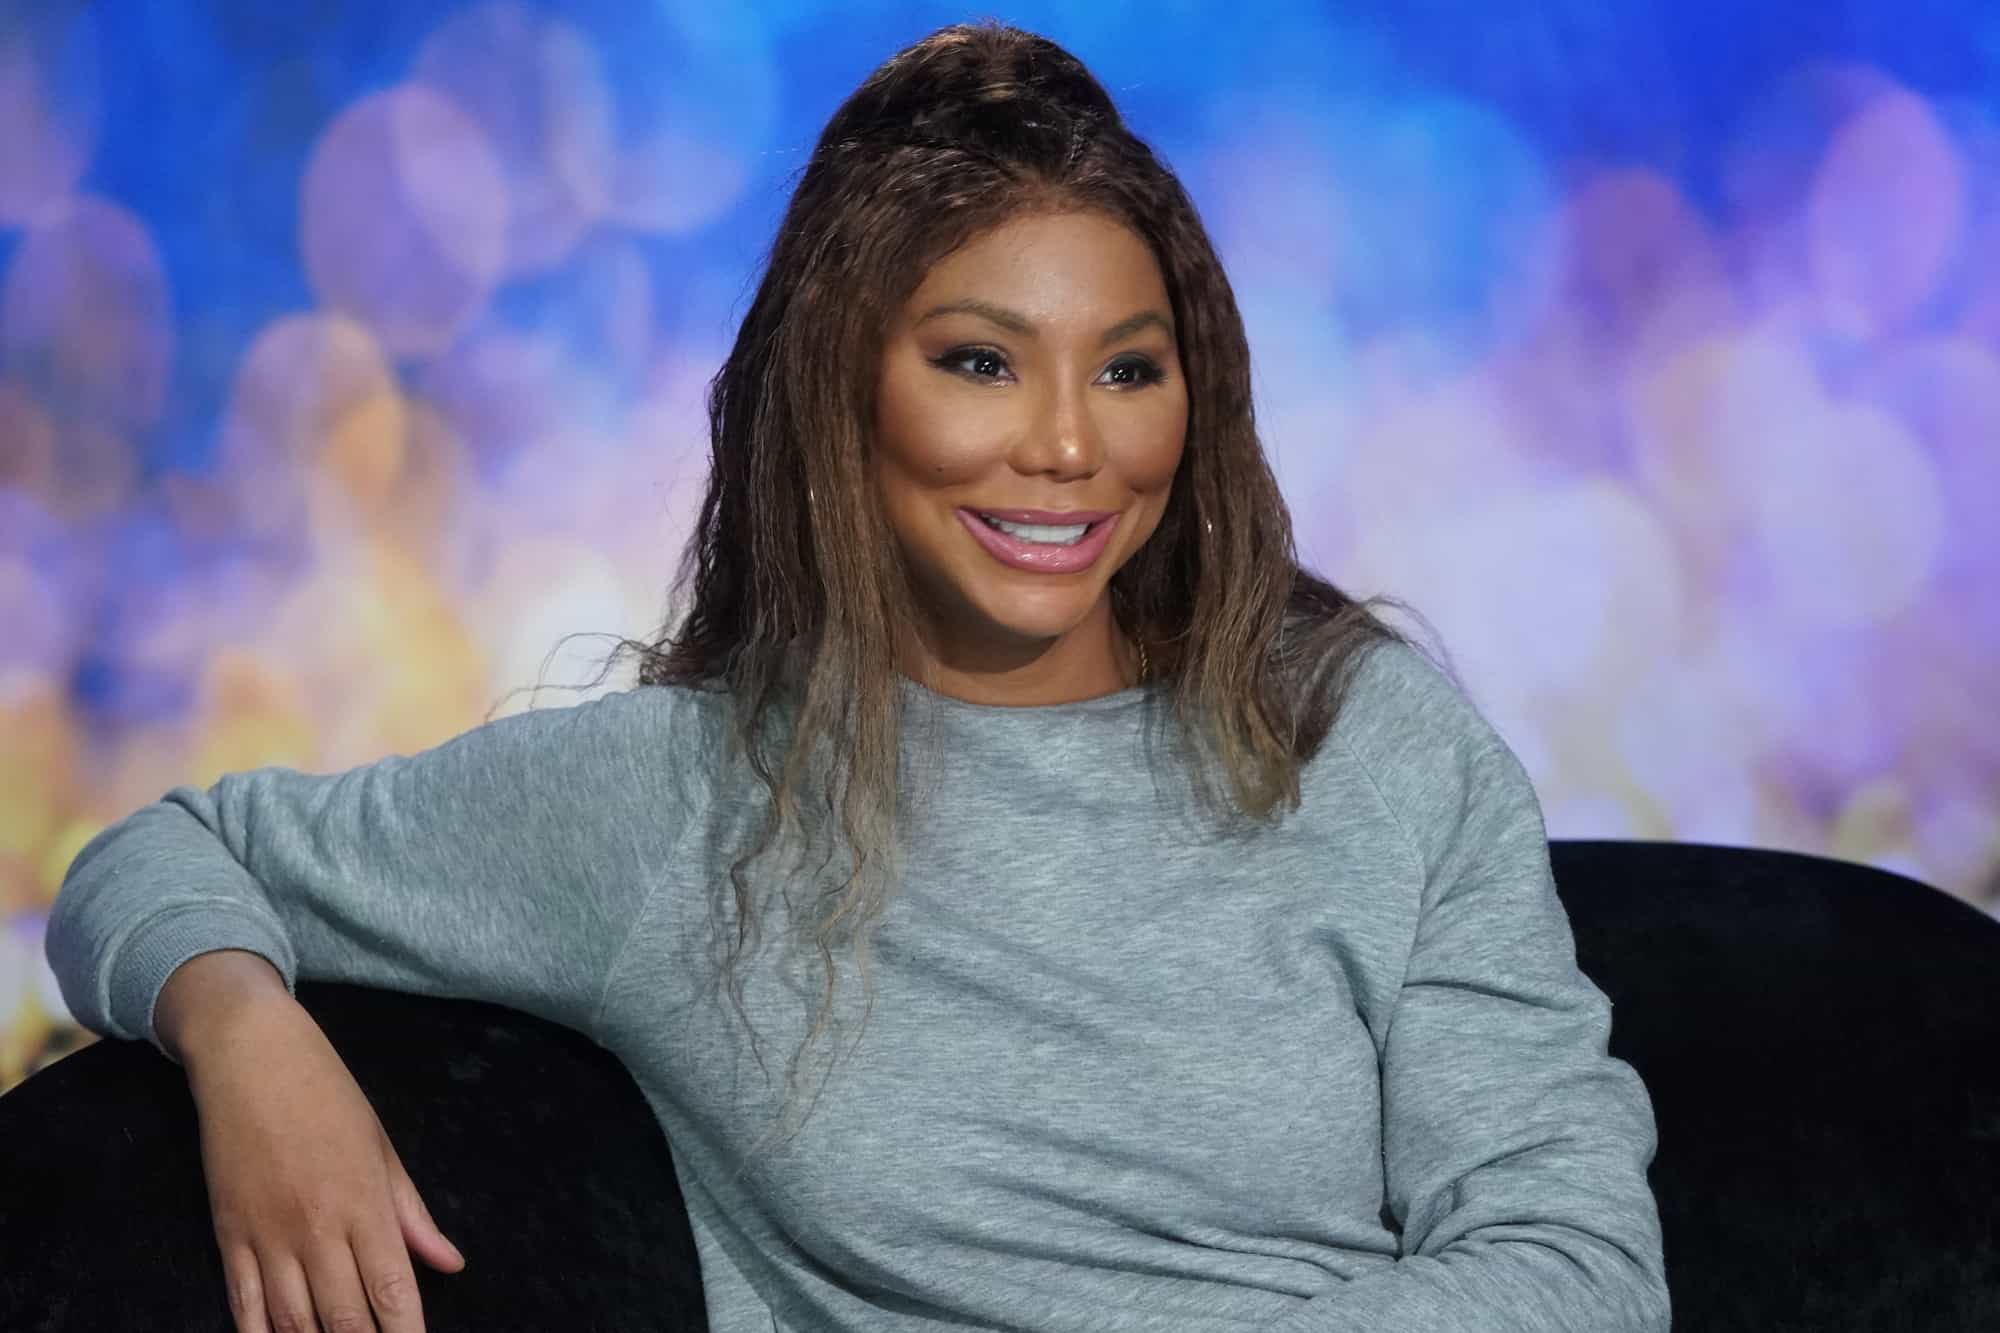 Tamar Braxton Begins Her Birthday Weekend And Also Gushes Over Her 'Real Life Sister' - Check Out The Crazy Video That She Shared Which Has Fans Calling Her 'Ball Of Joy'